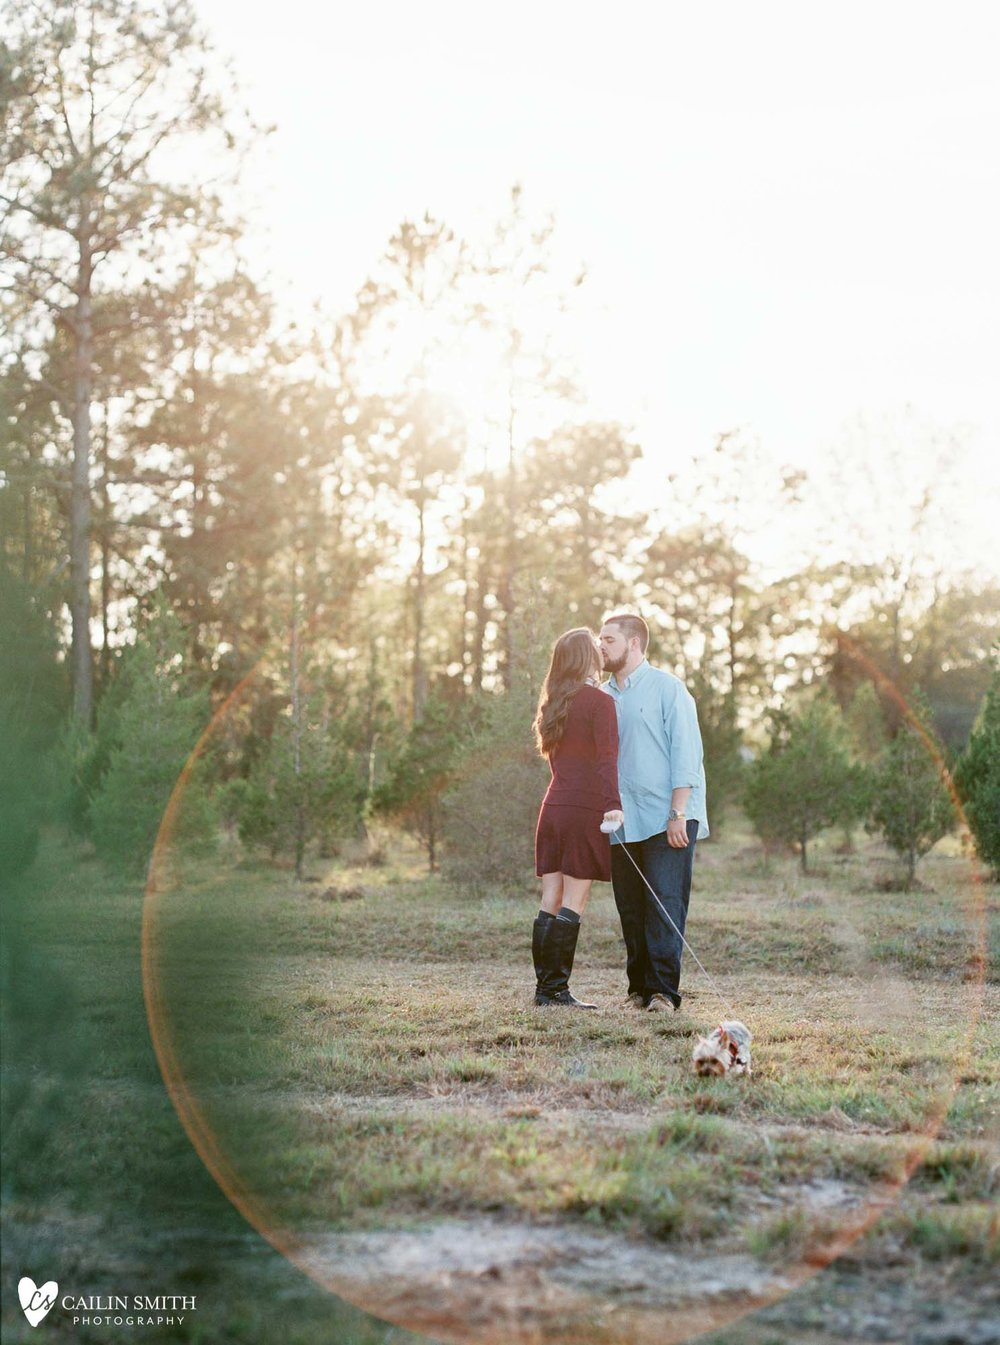 Elyssa_Caleb_Tree_Farm_Engagement_Photography_Jacksonville_015.jpg